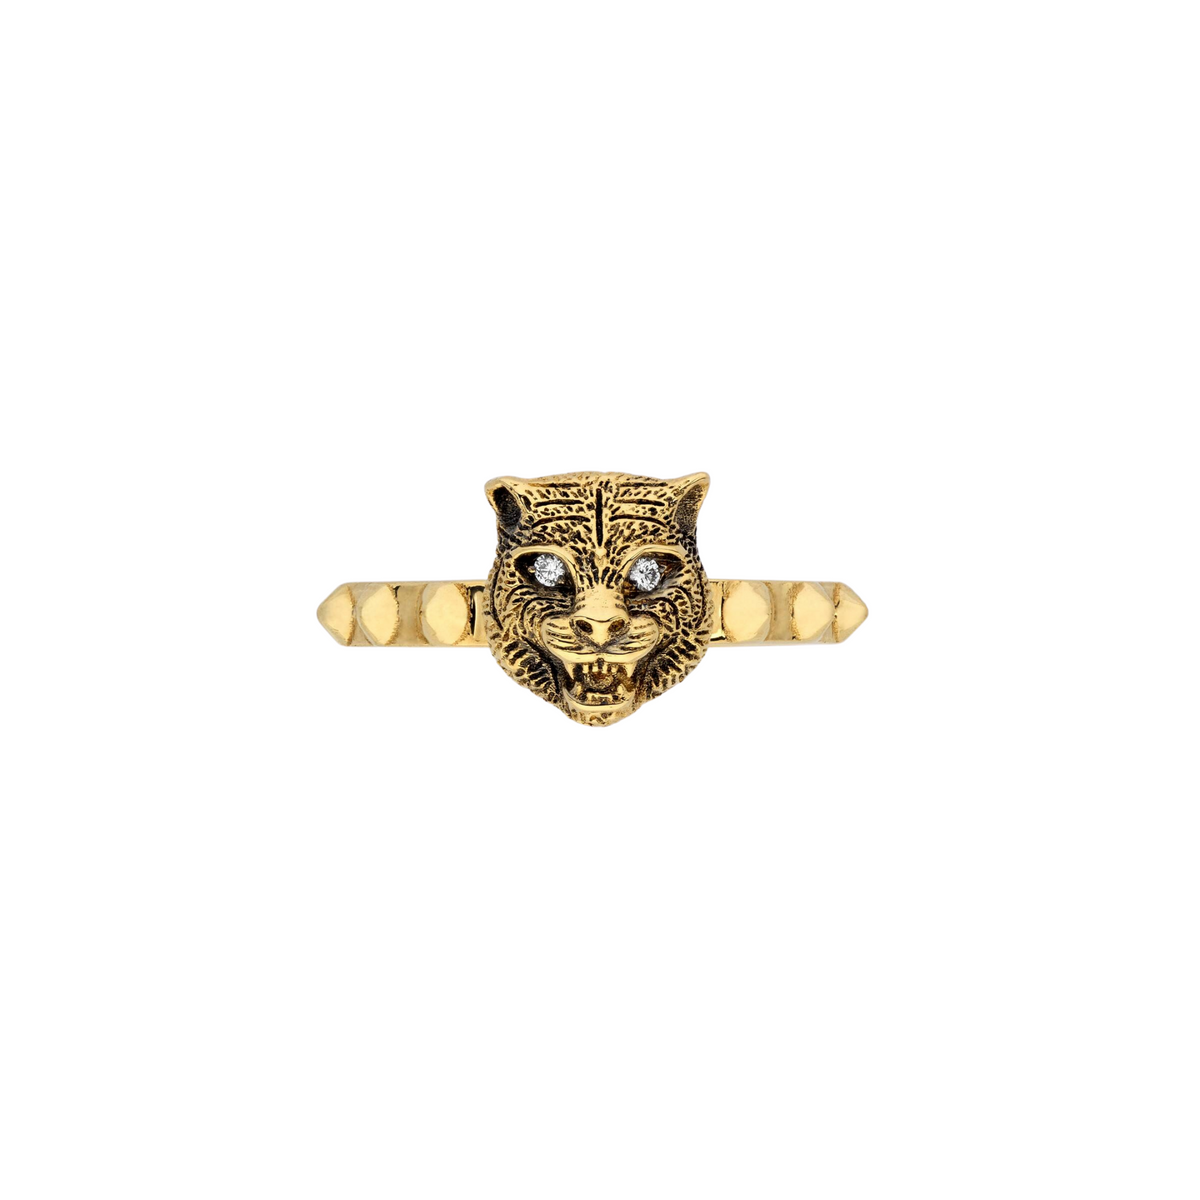 Gucci Le Marché des Merveilles Ring in 18k Yellow Gold with Diamonds